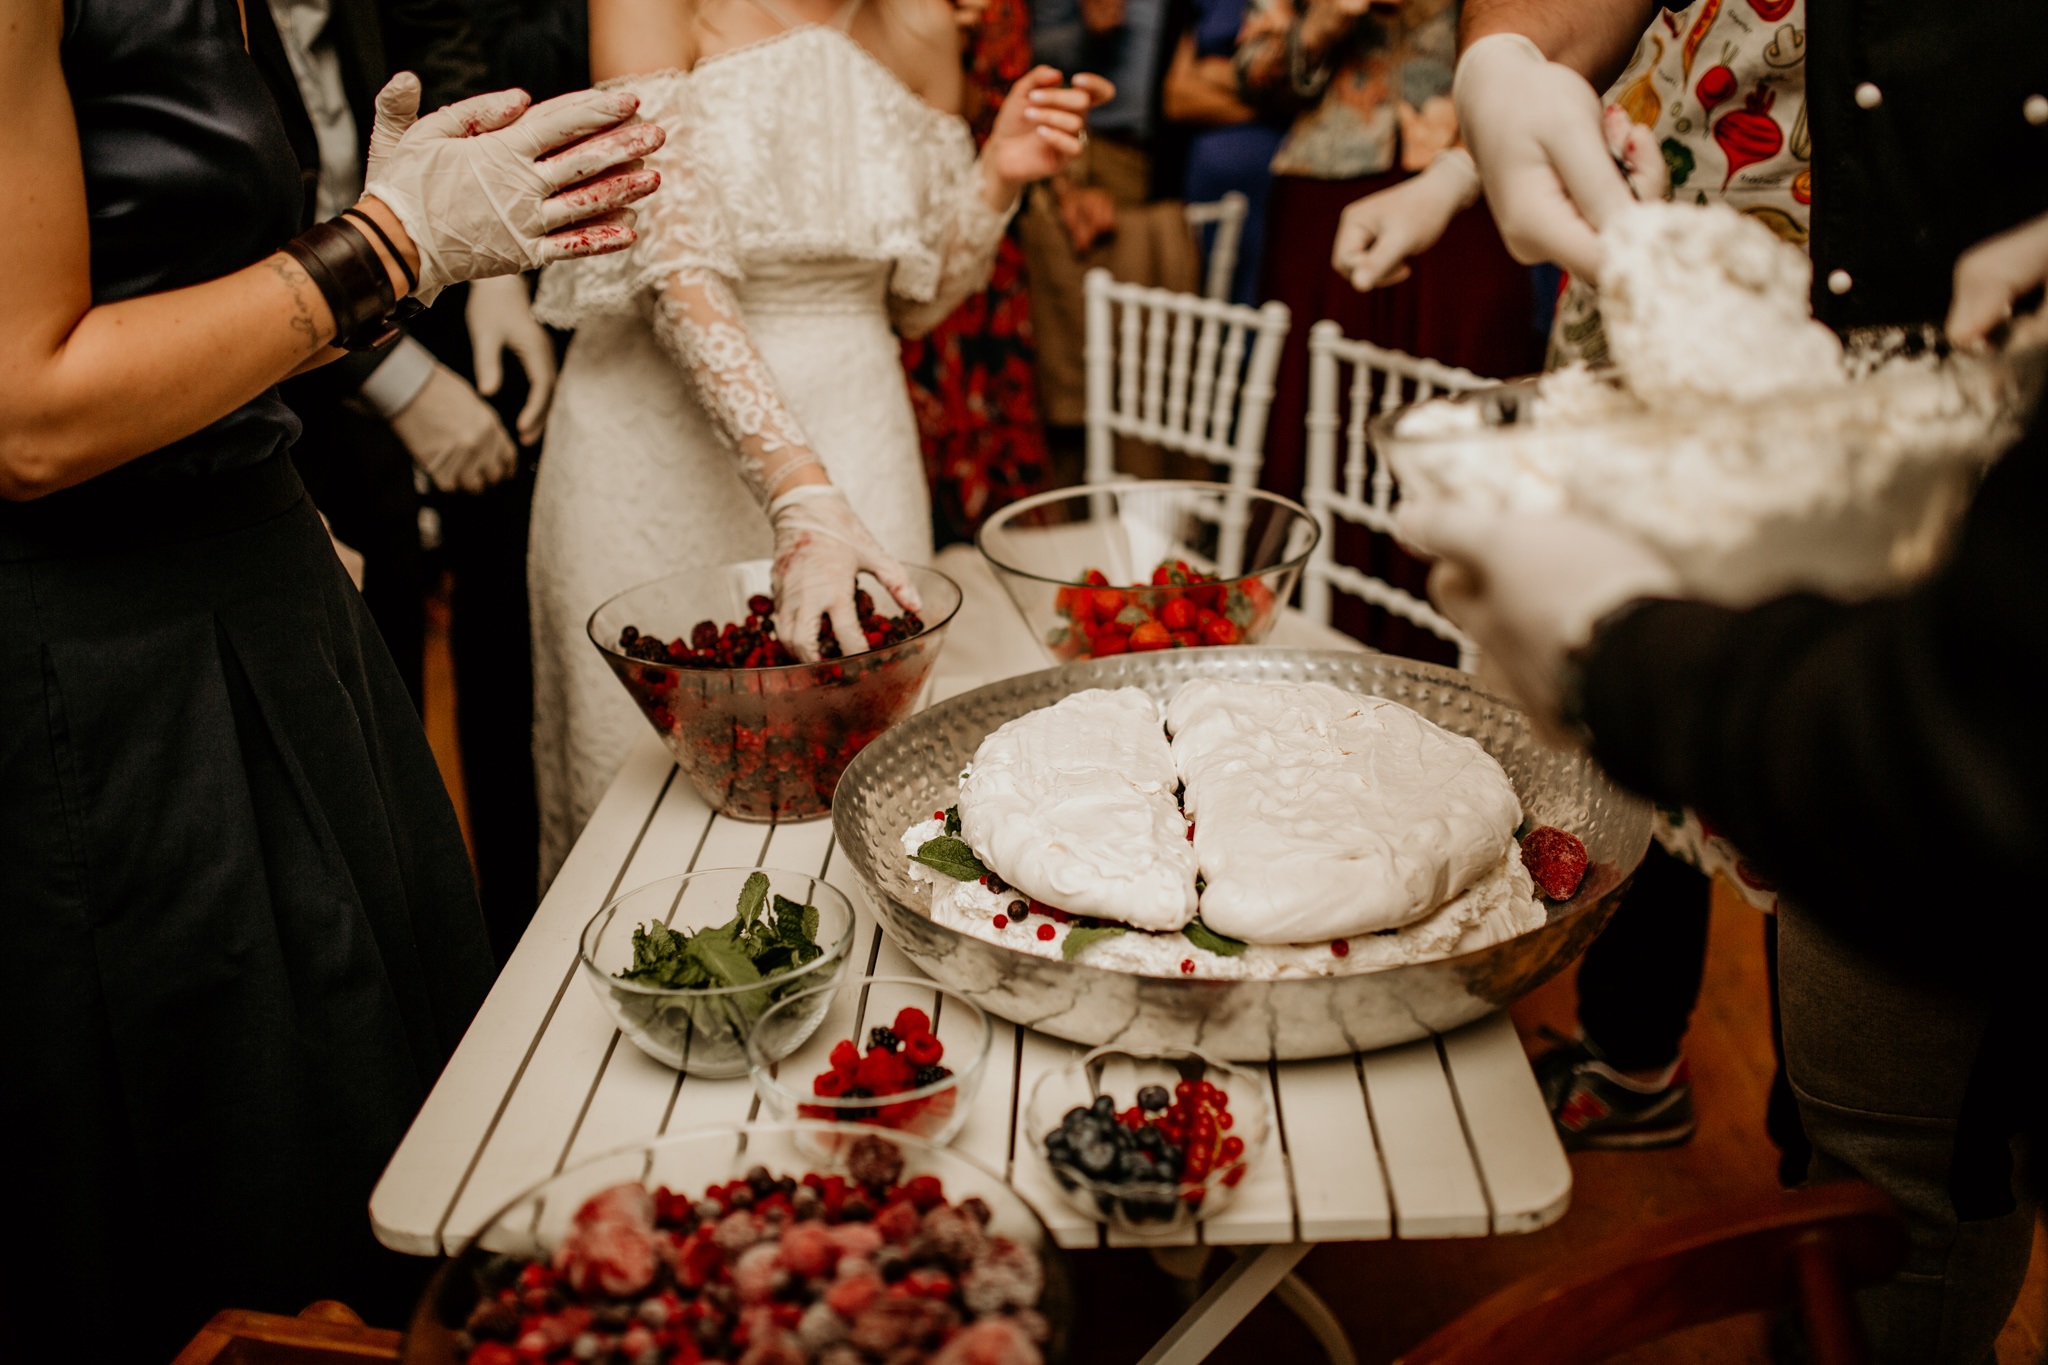 make your own wedding cake for the wedding reception